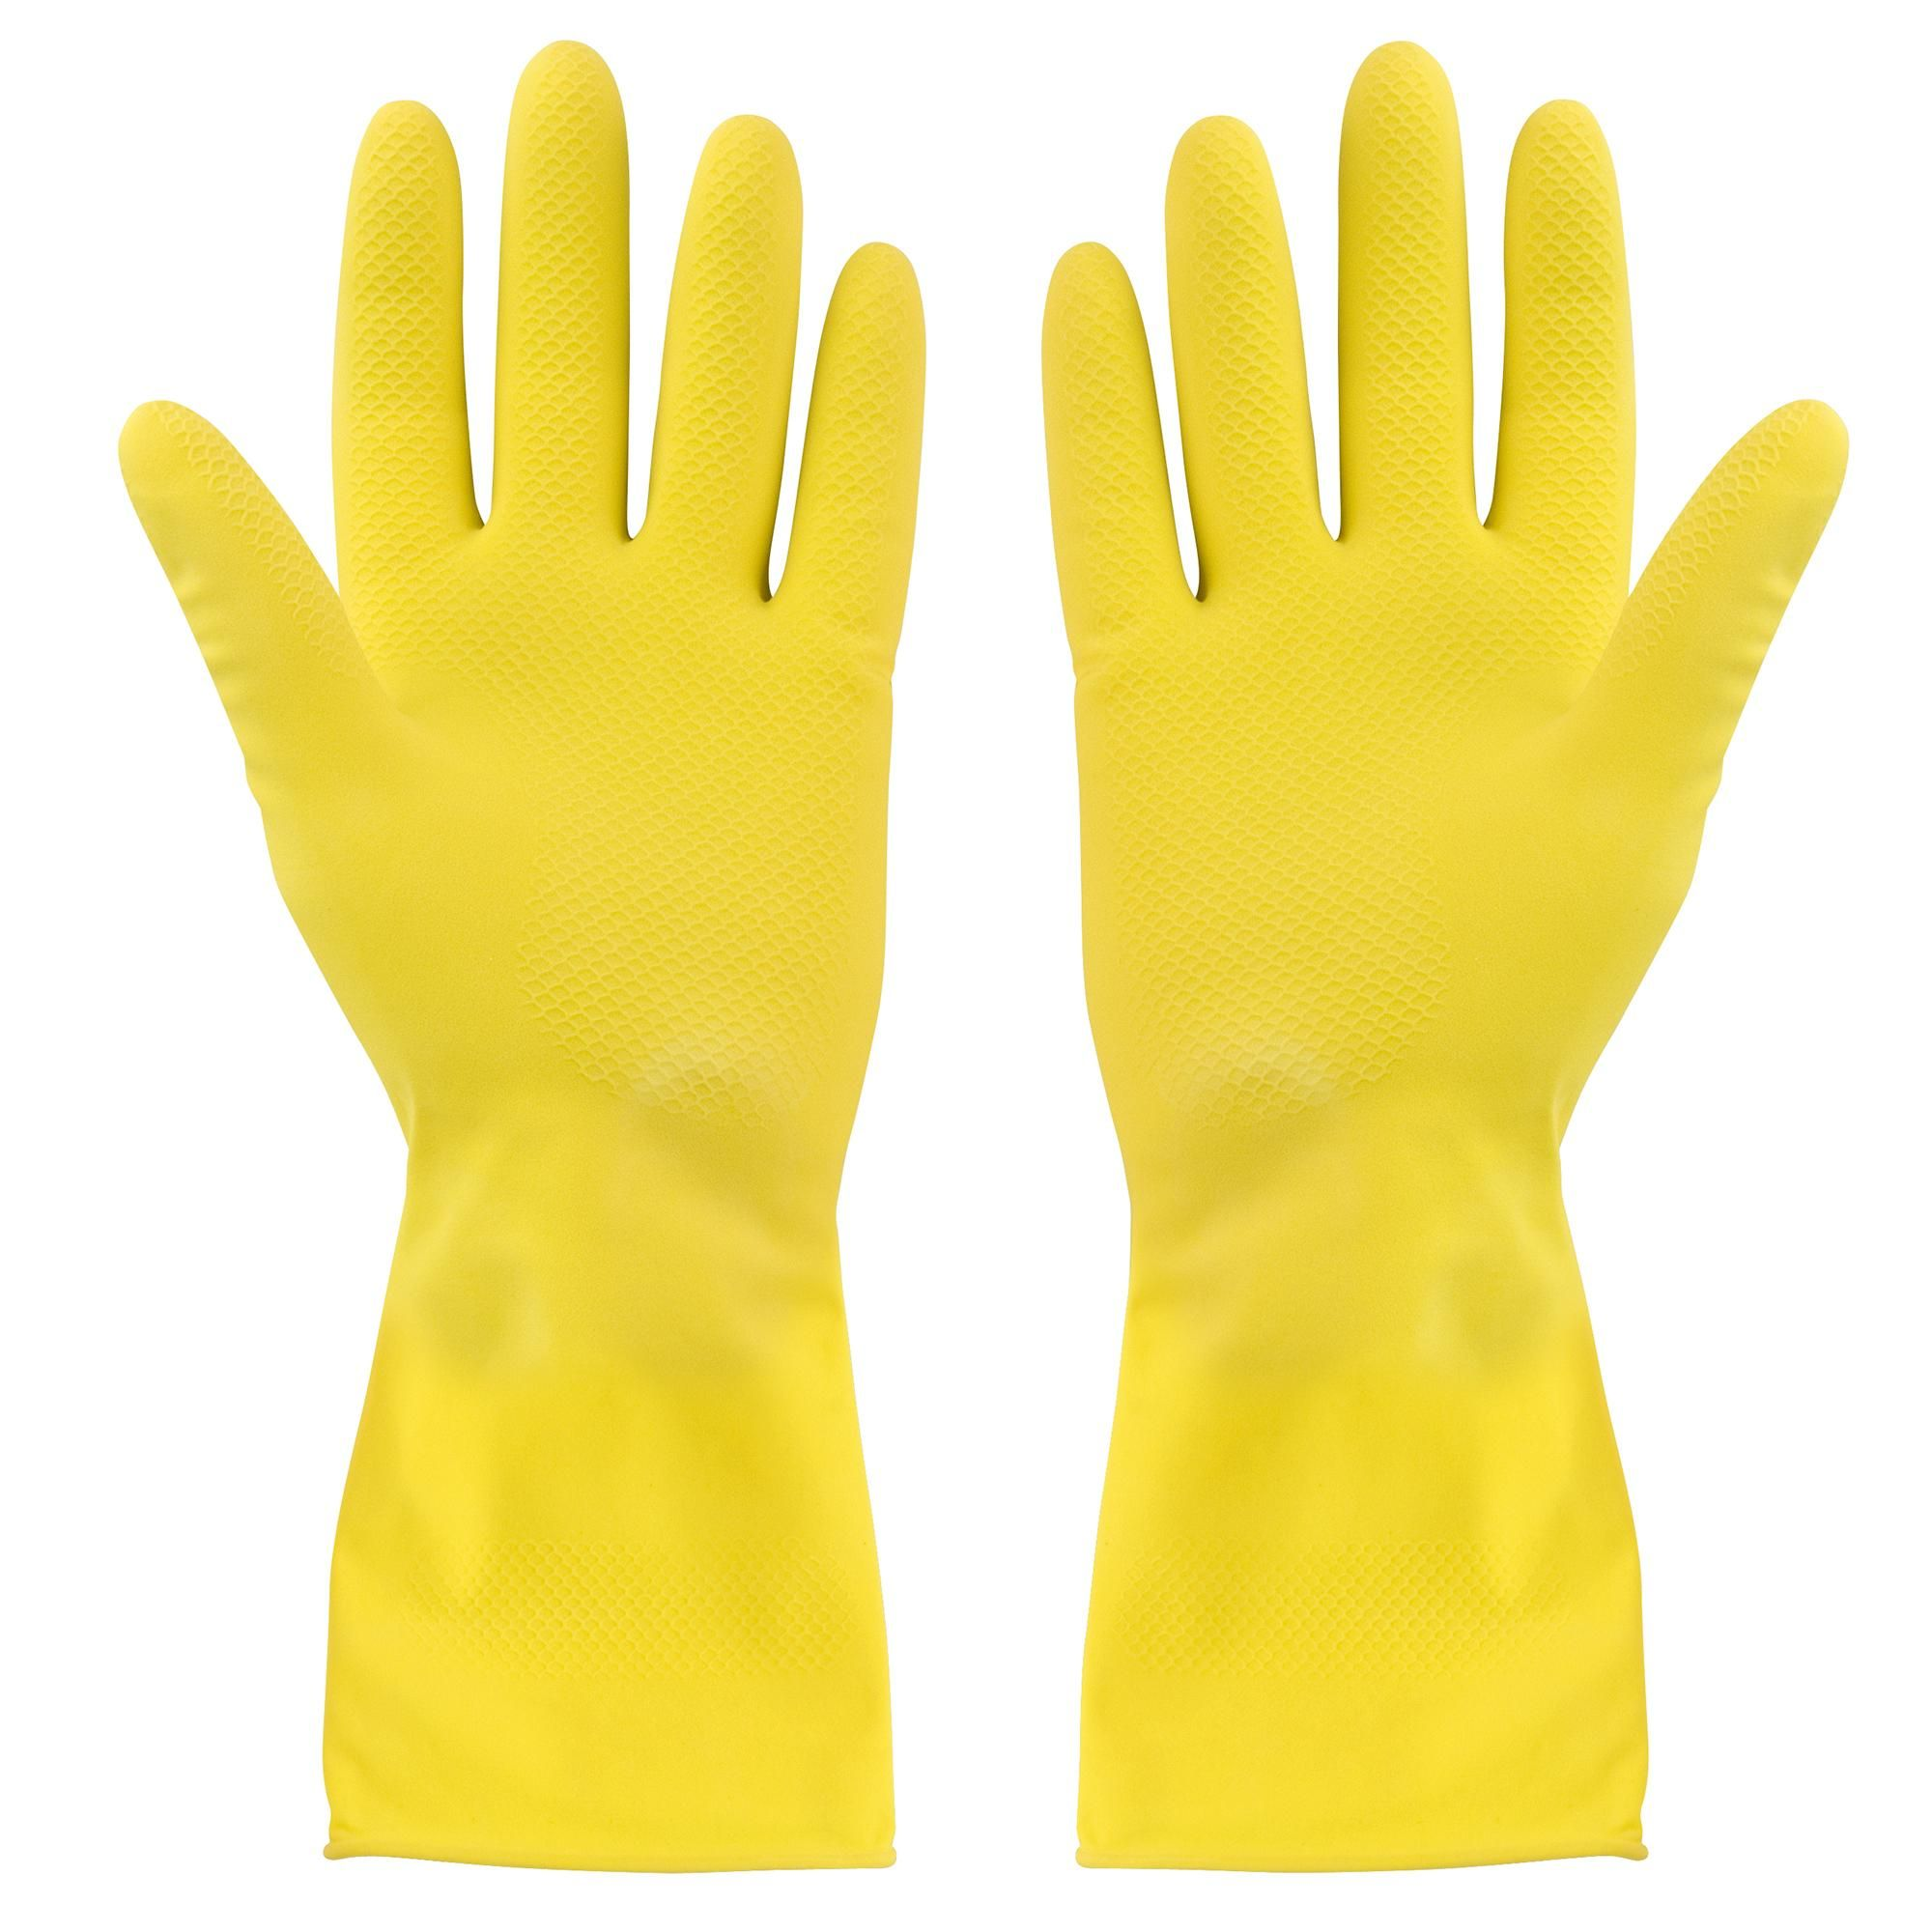 Medium Rubber Gloves In 2020 Rubber Gloves Cleaning Gloves